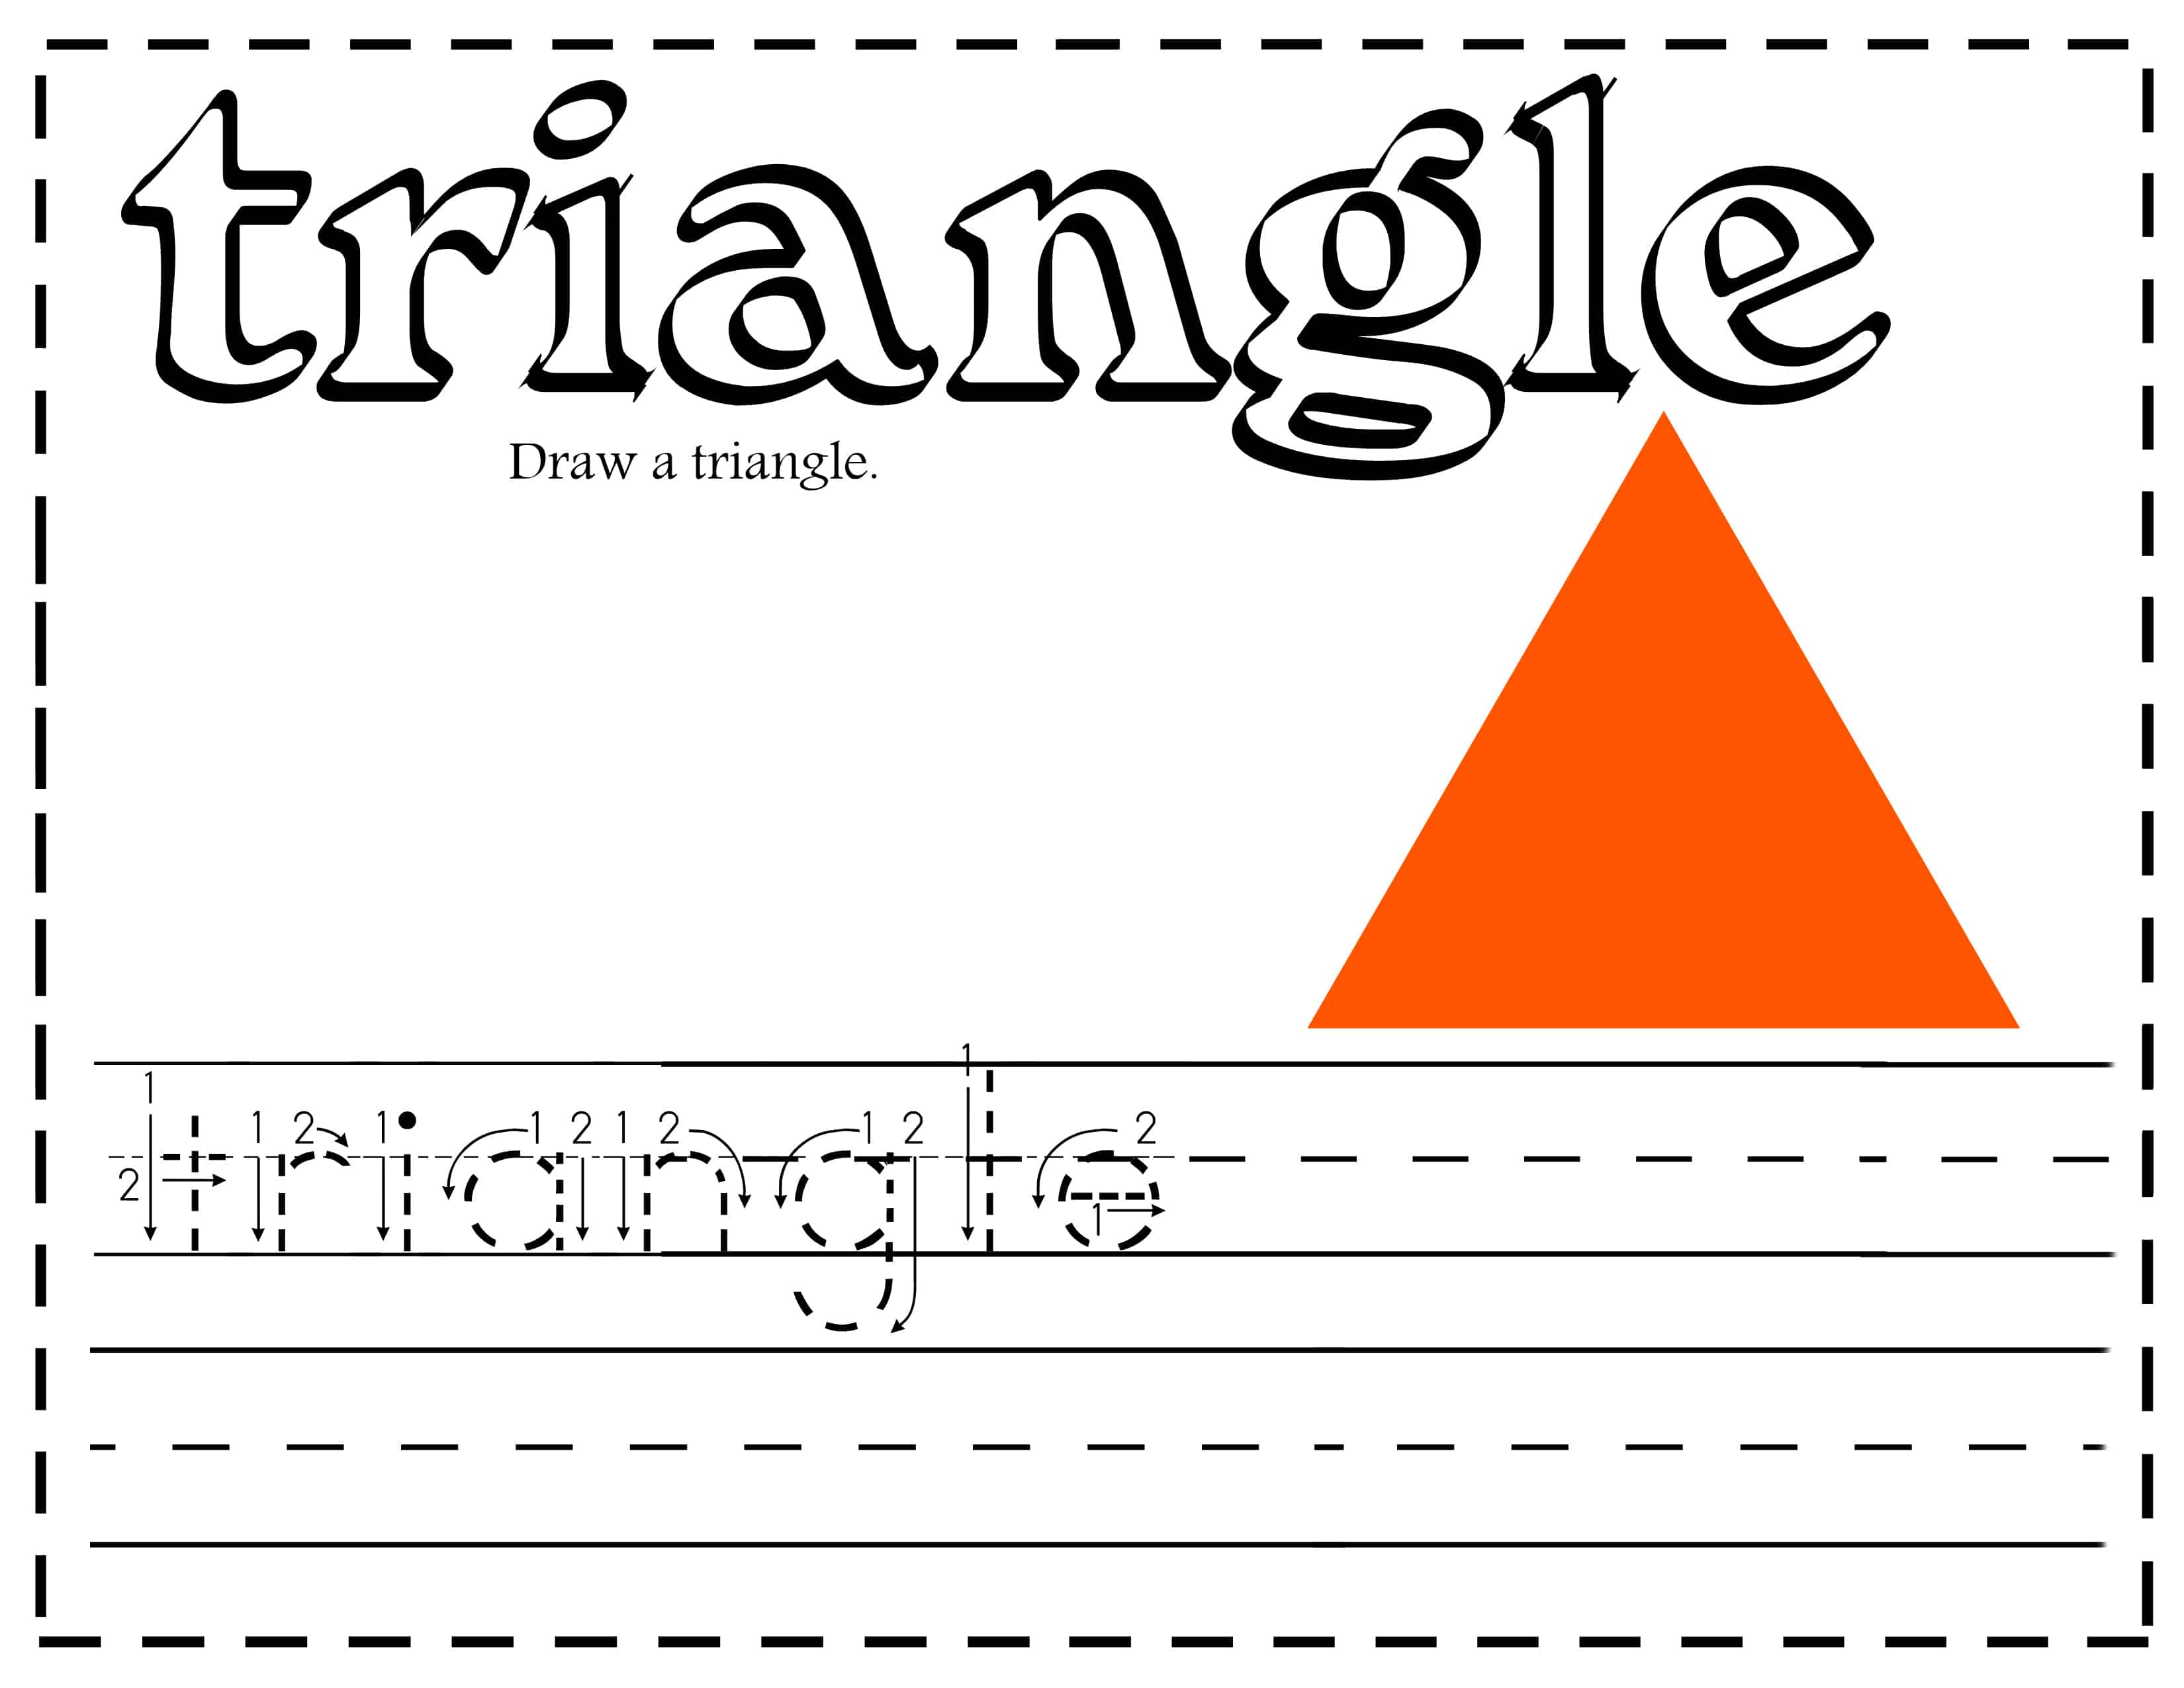 All about learning shapes printables and activities - Triangle